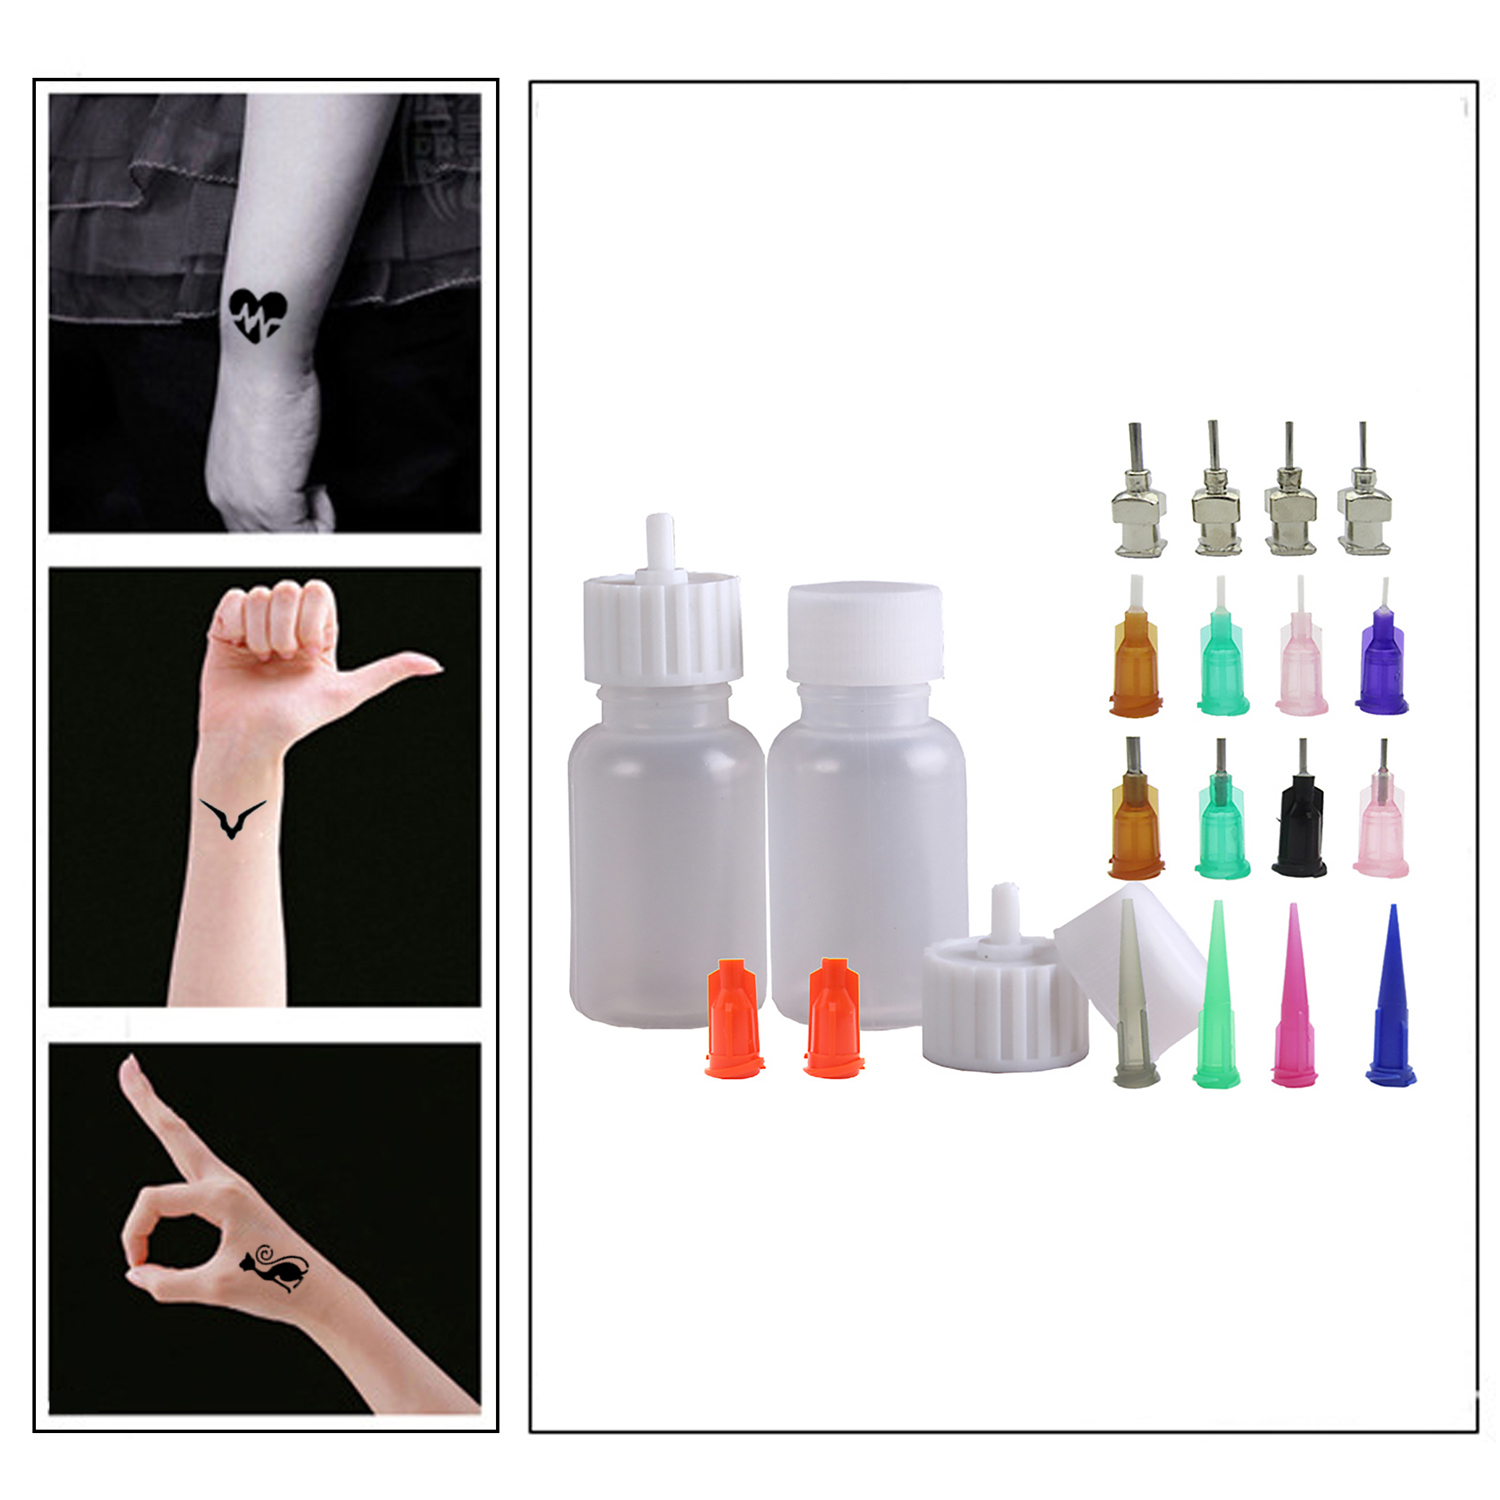 24PCS 30ml Painting Paste Applicator Bottles Kit With Needles Caps Stoppers For Henna Tattoo Craft Glue Body Painting Jagua